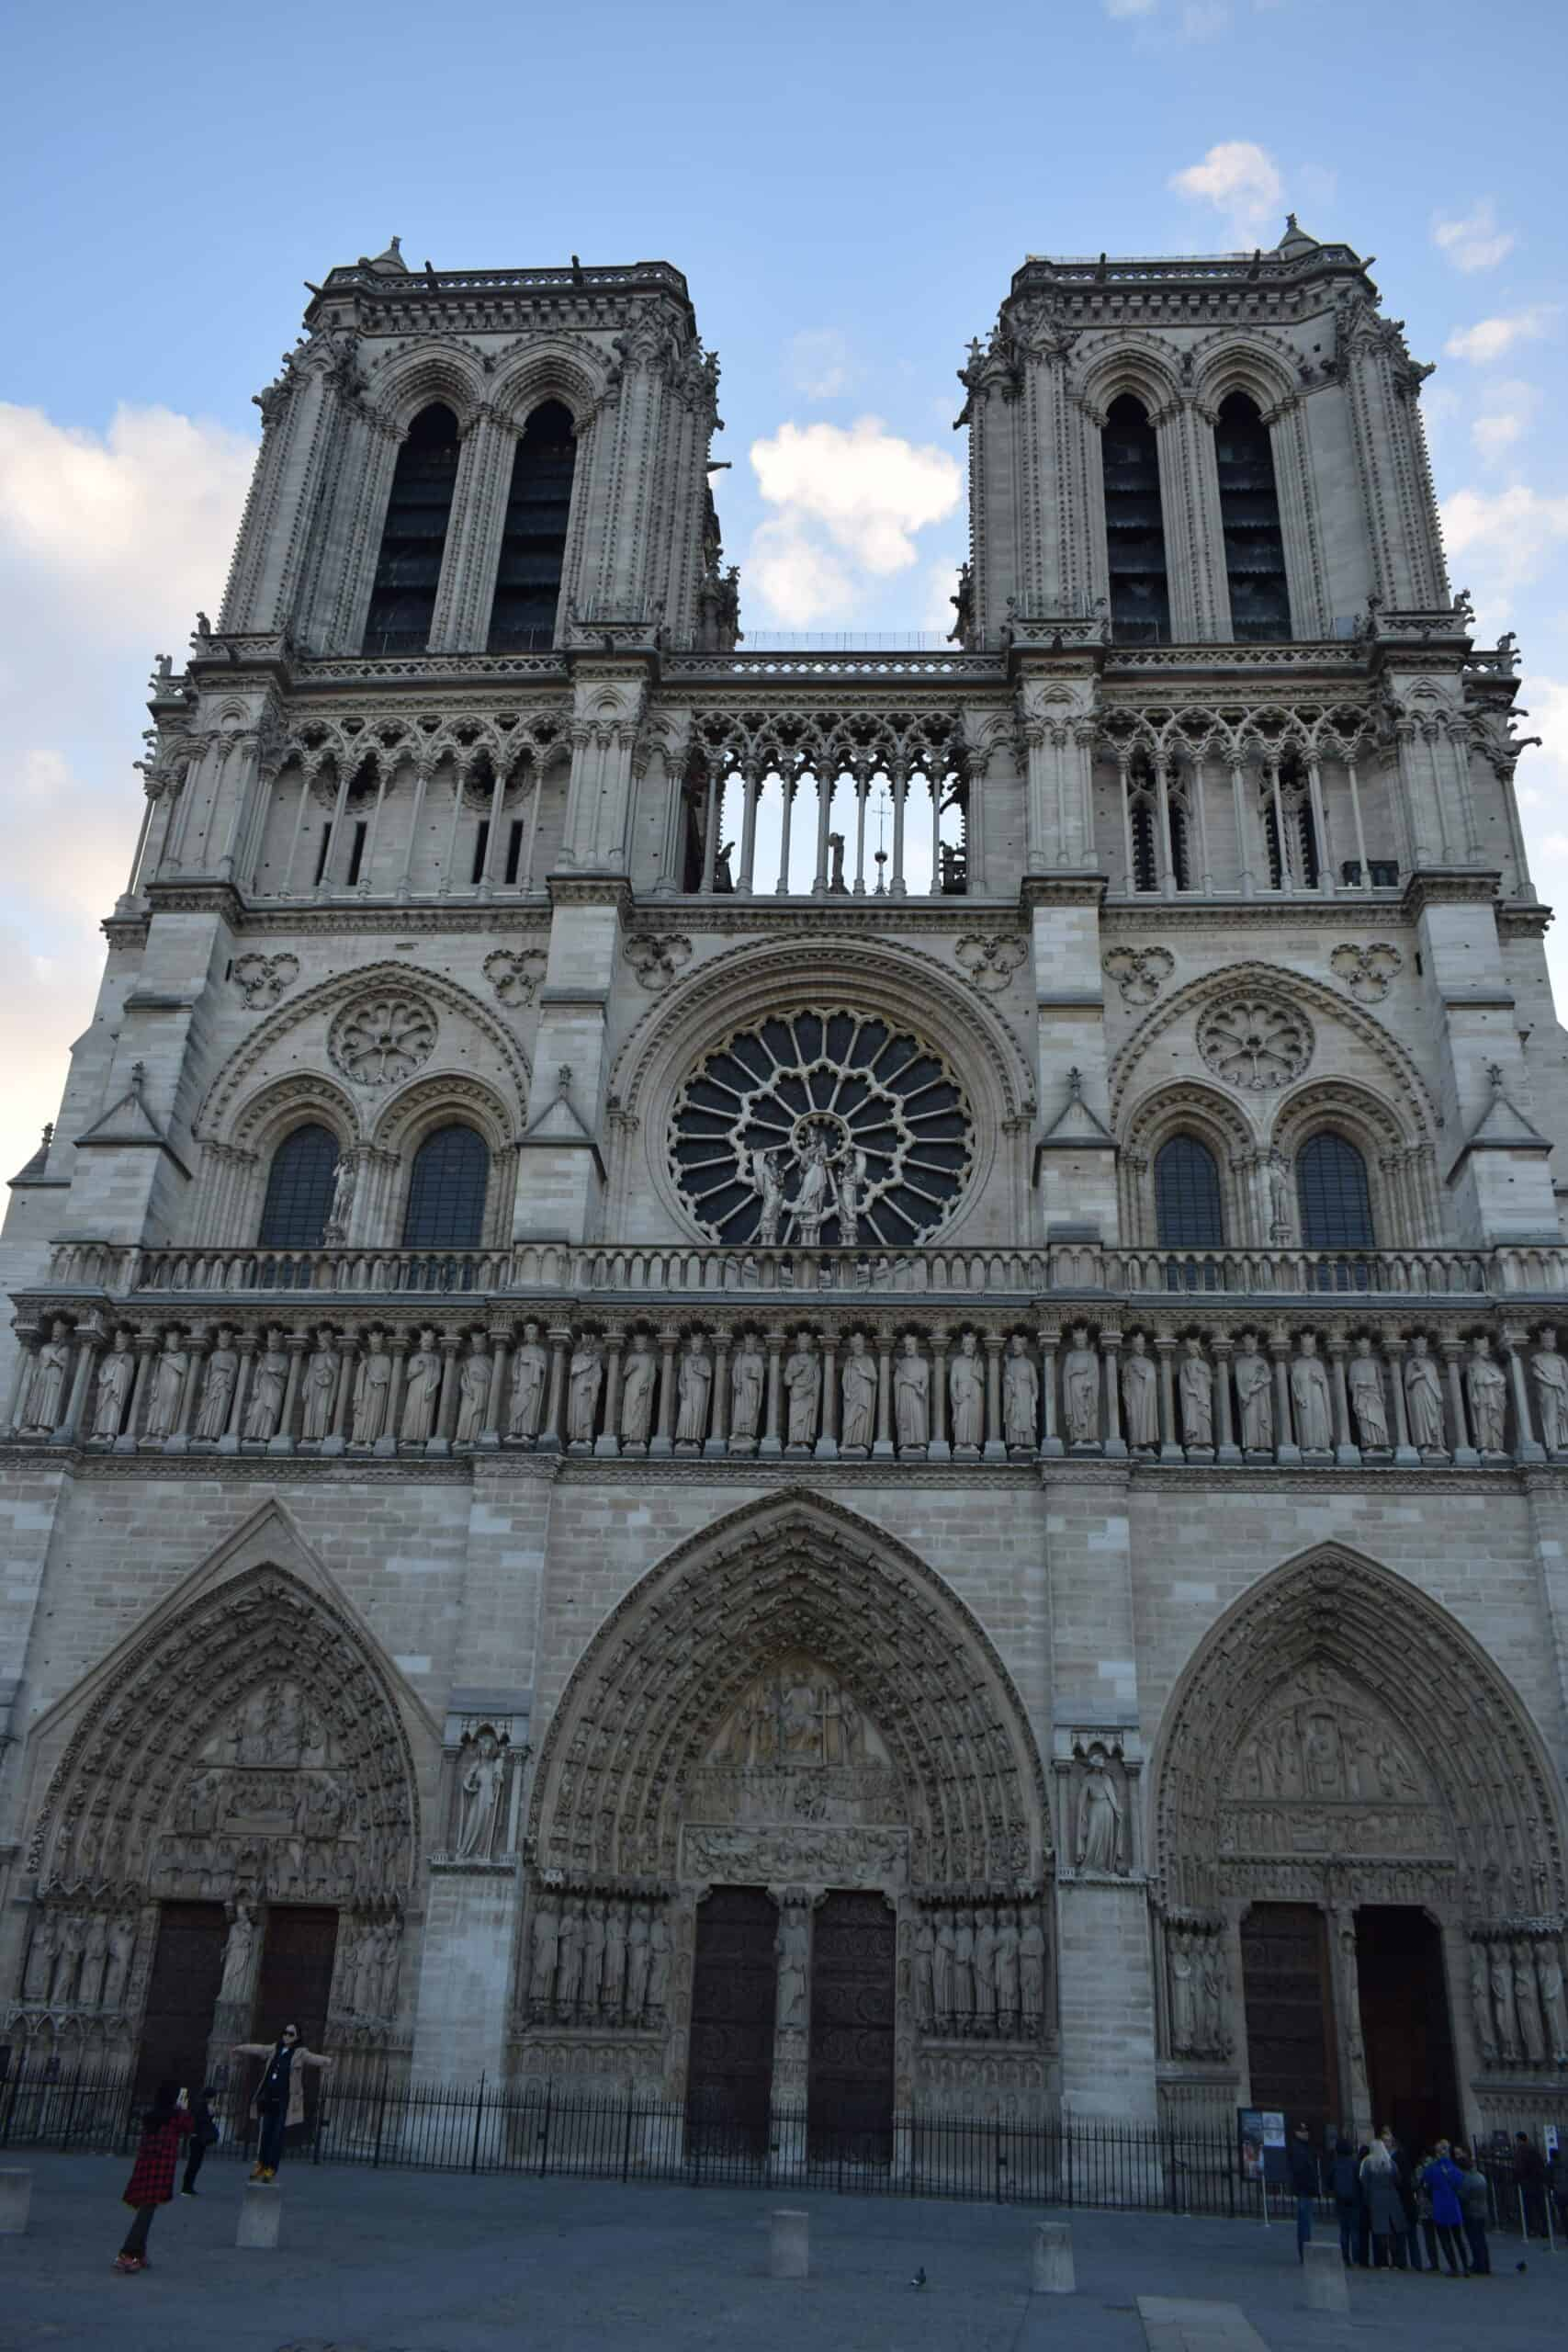 Free audio walking tour of Paris - Notre Dame Cathedral